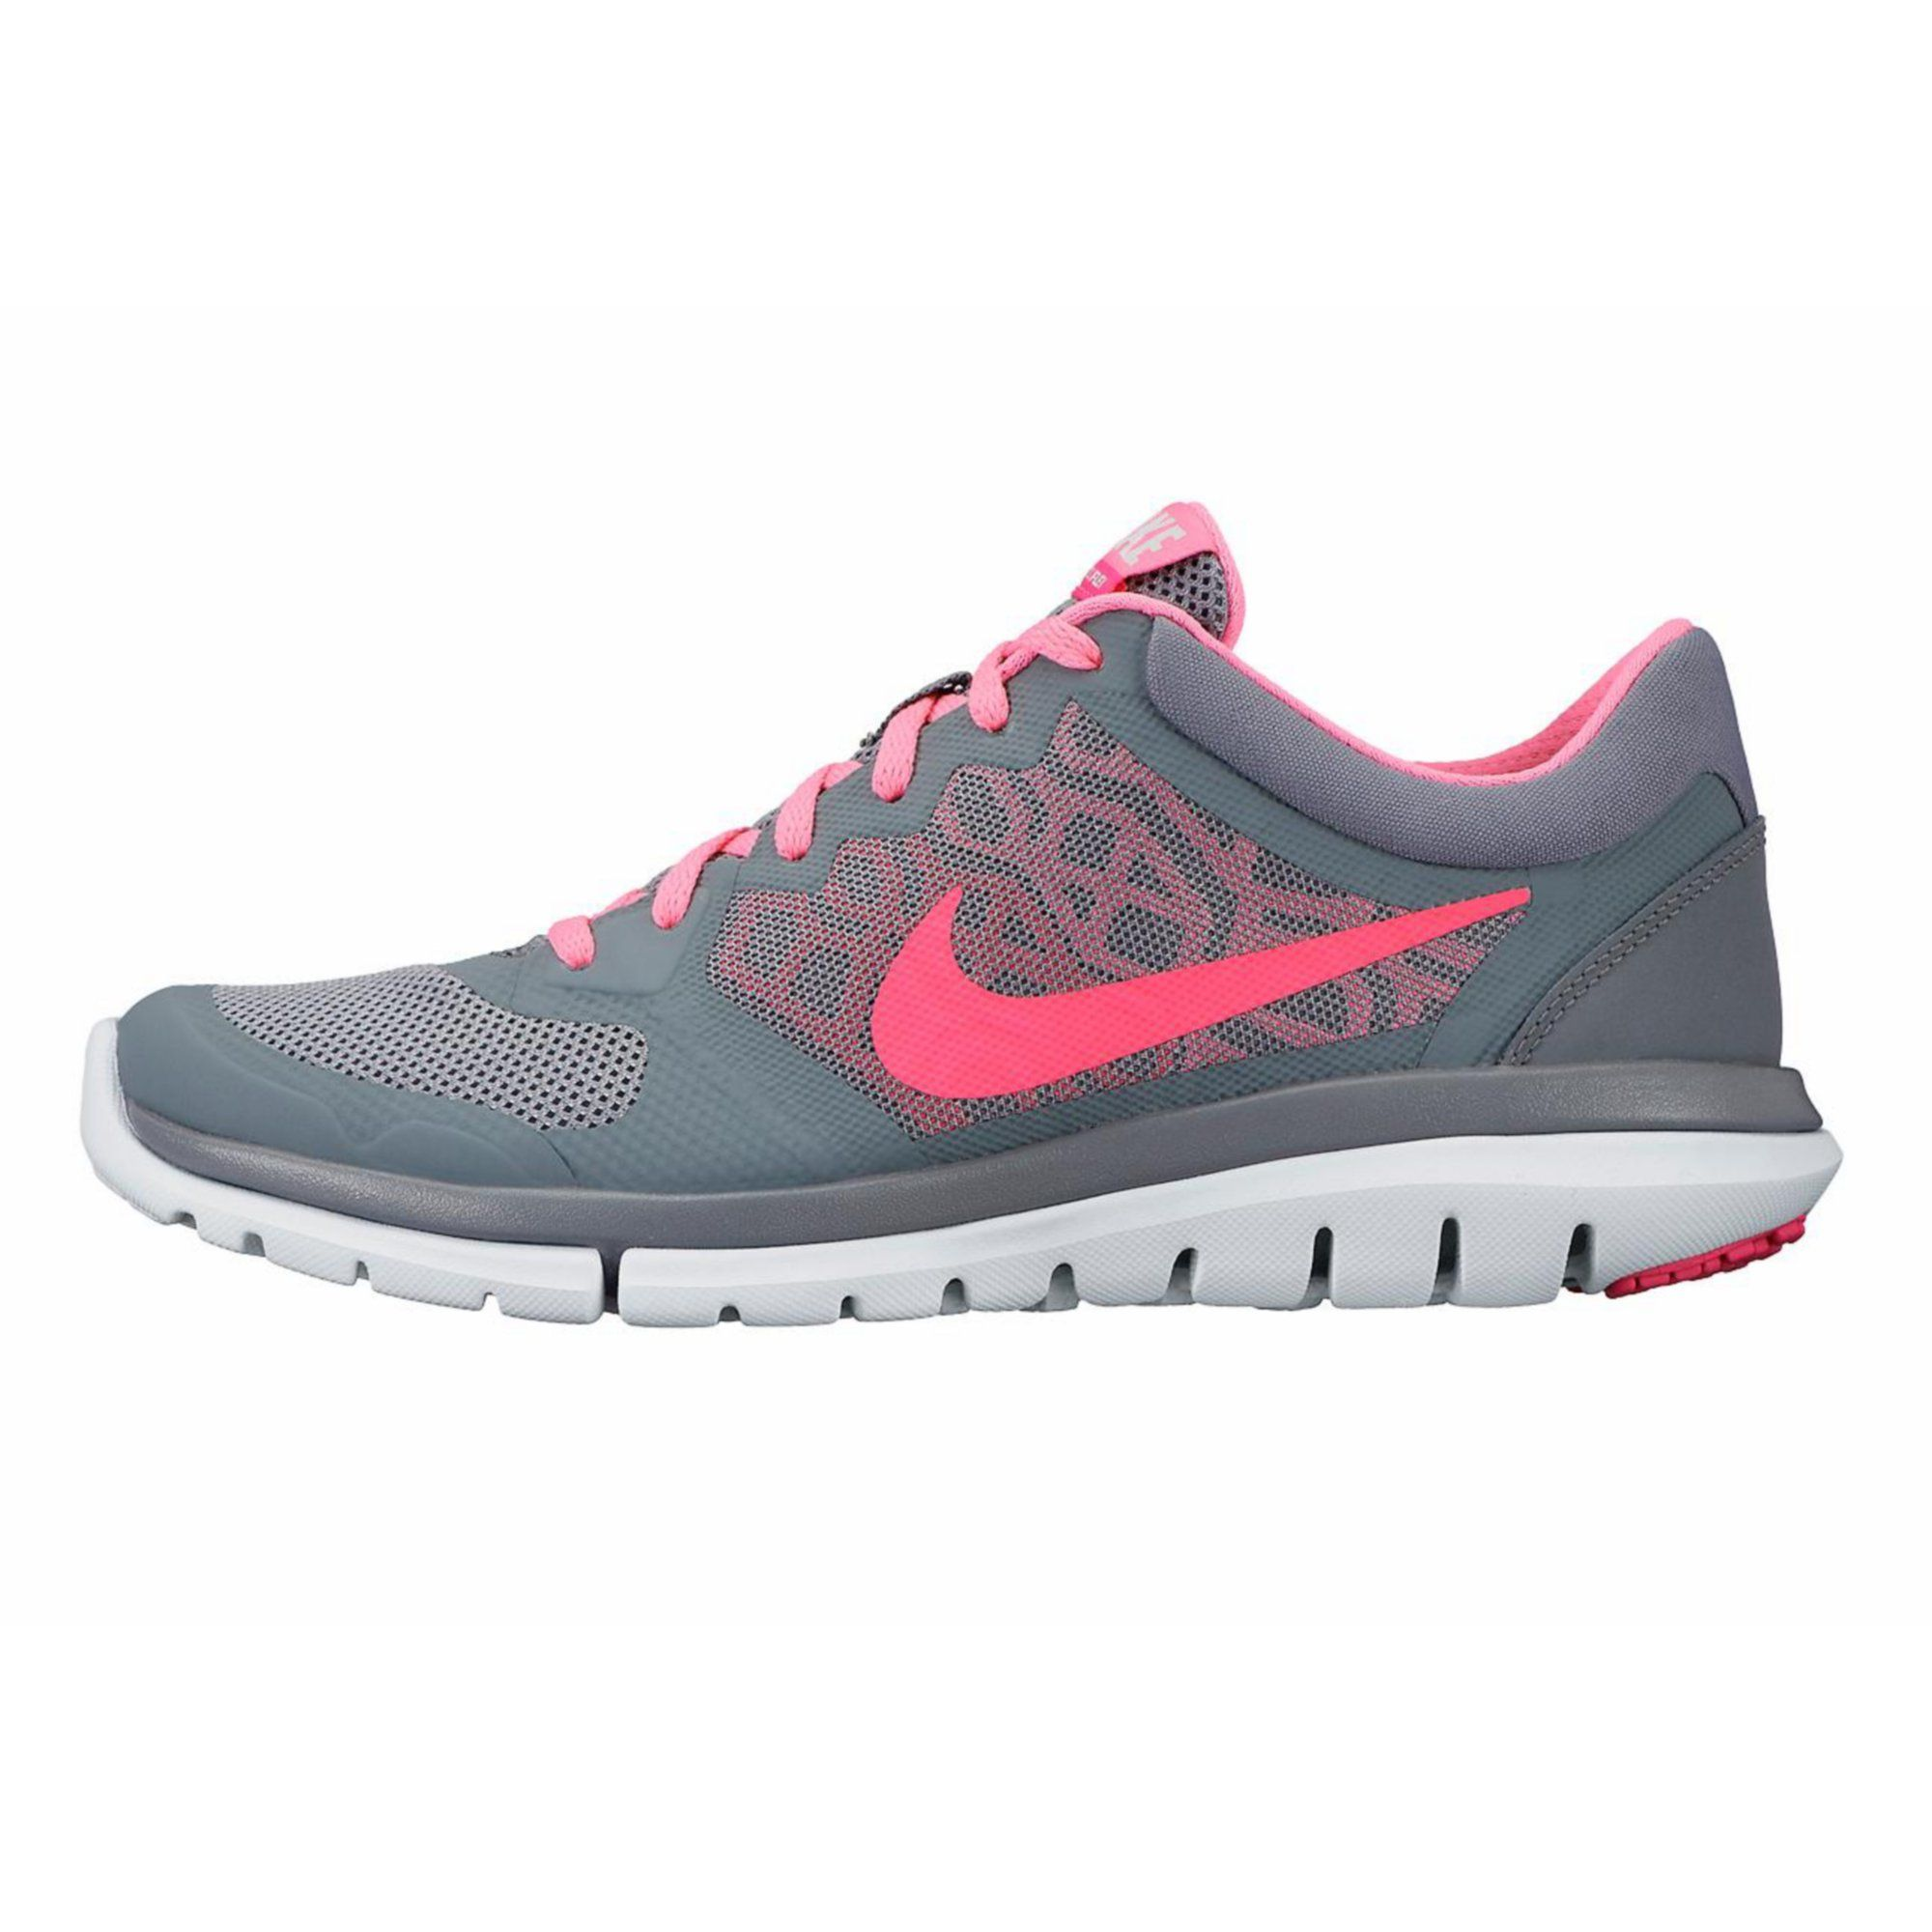 nike internationalist femme 3 suisses